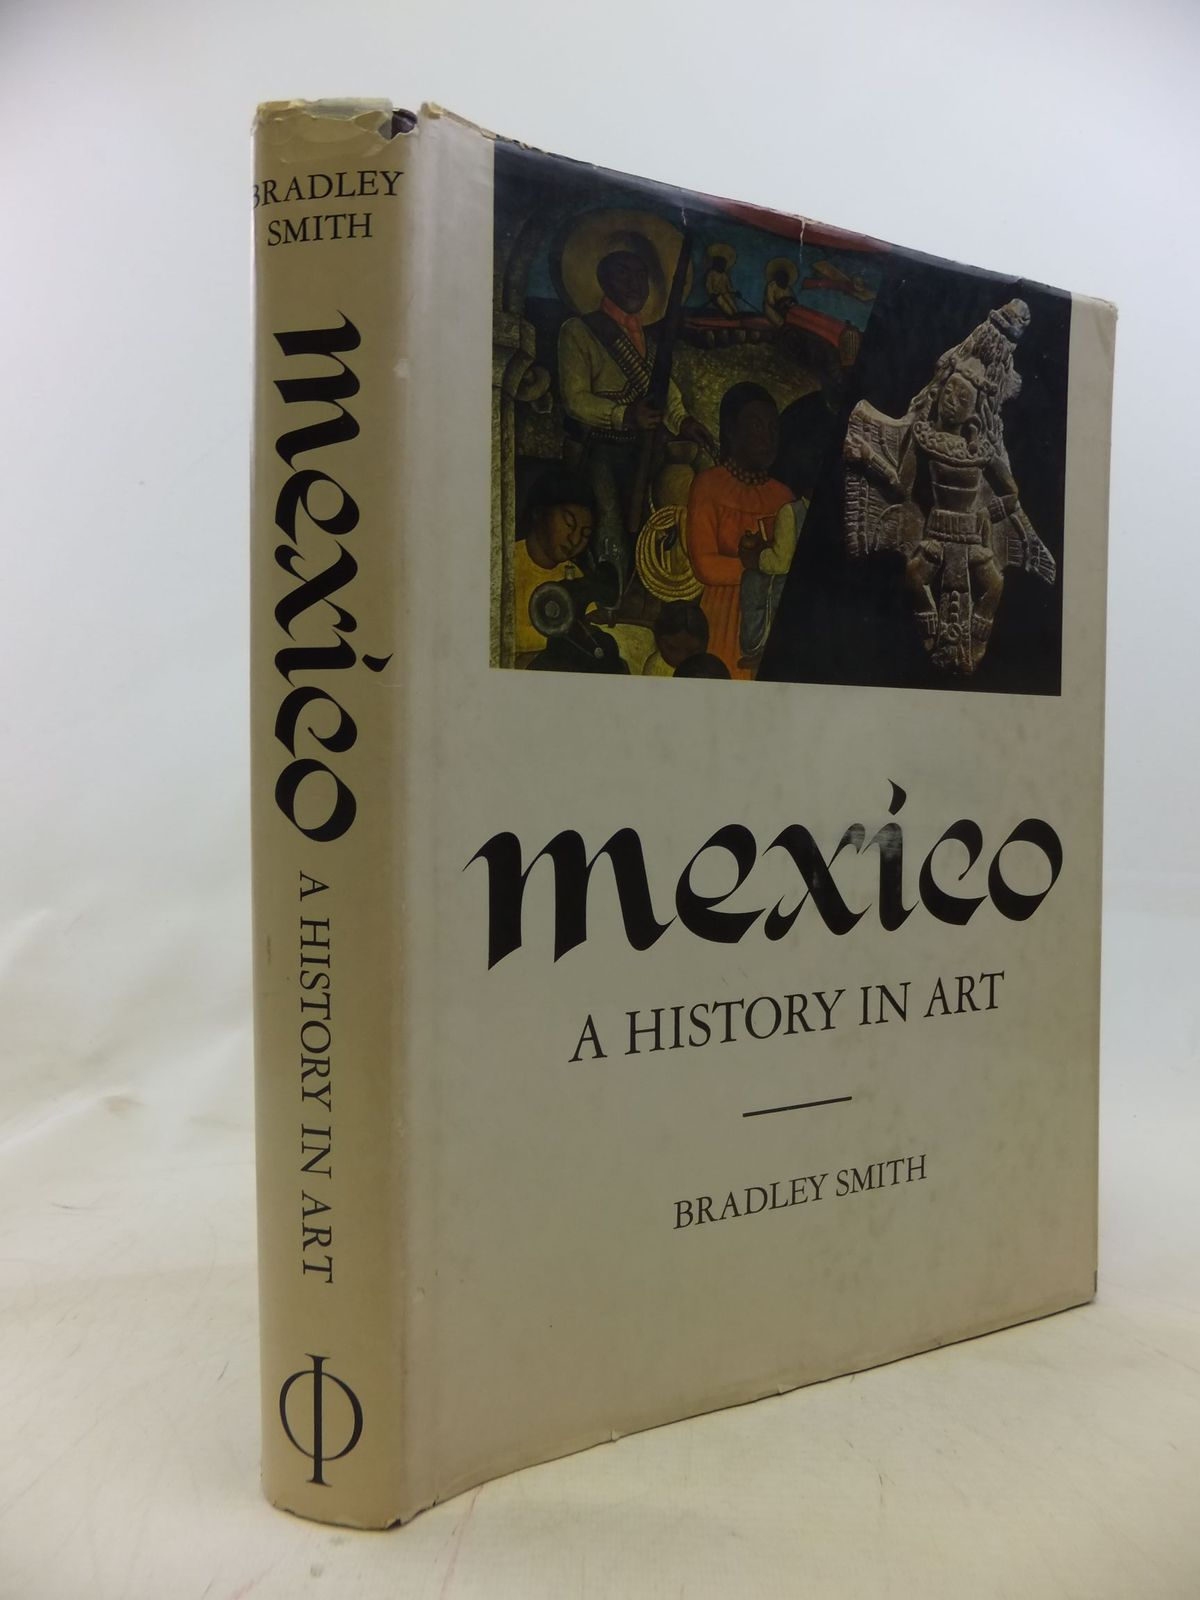 Photo of MEXICO A HISTORY IN ART written by Smith, Bradley published by Phaidon (STOCK CODE: 1711645)  for sale by Stella & Rose's Books